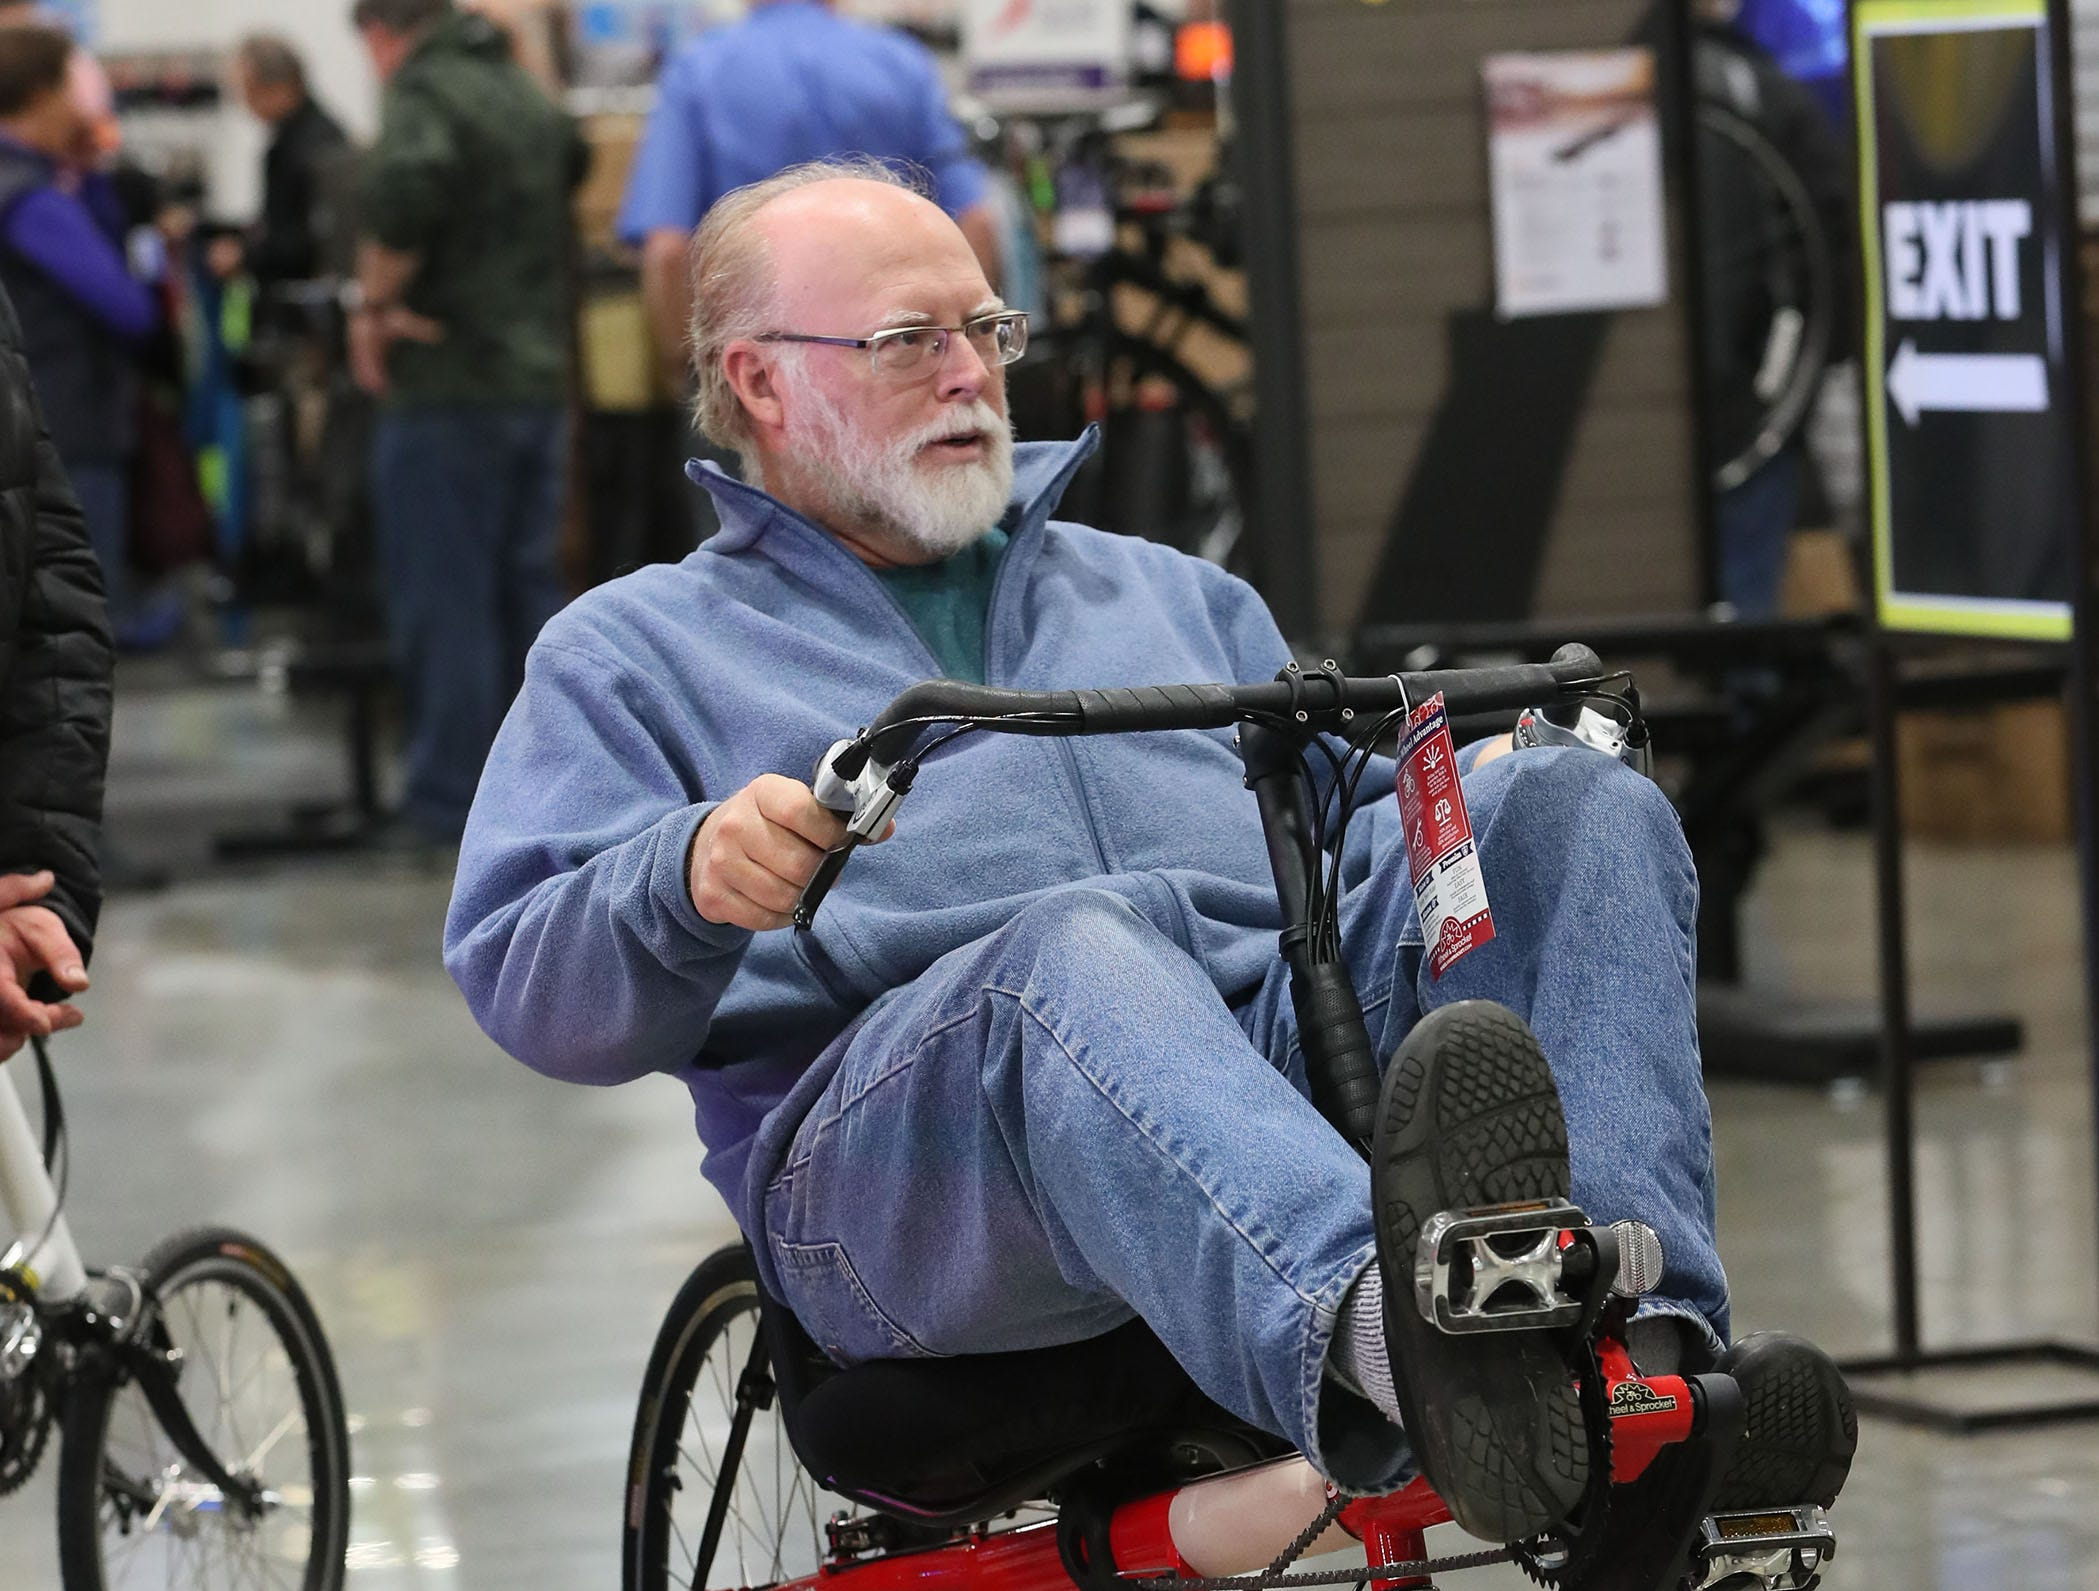 Kevin Andrist of Caledonia tests out a recumbent bike mounted on a trainer.